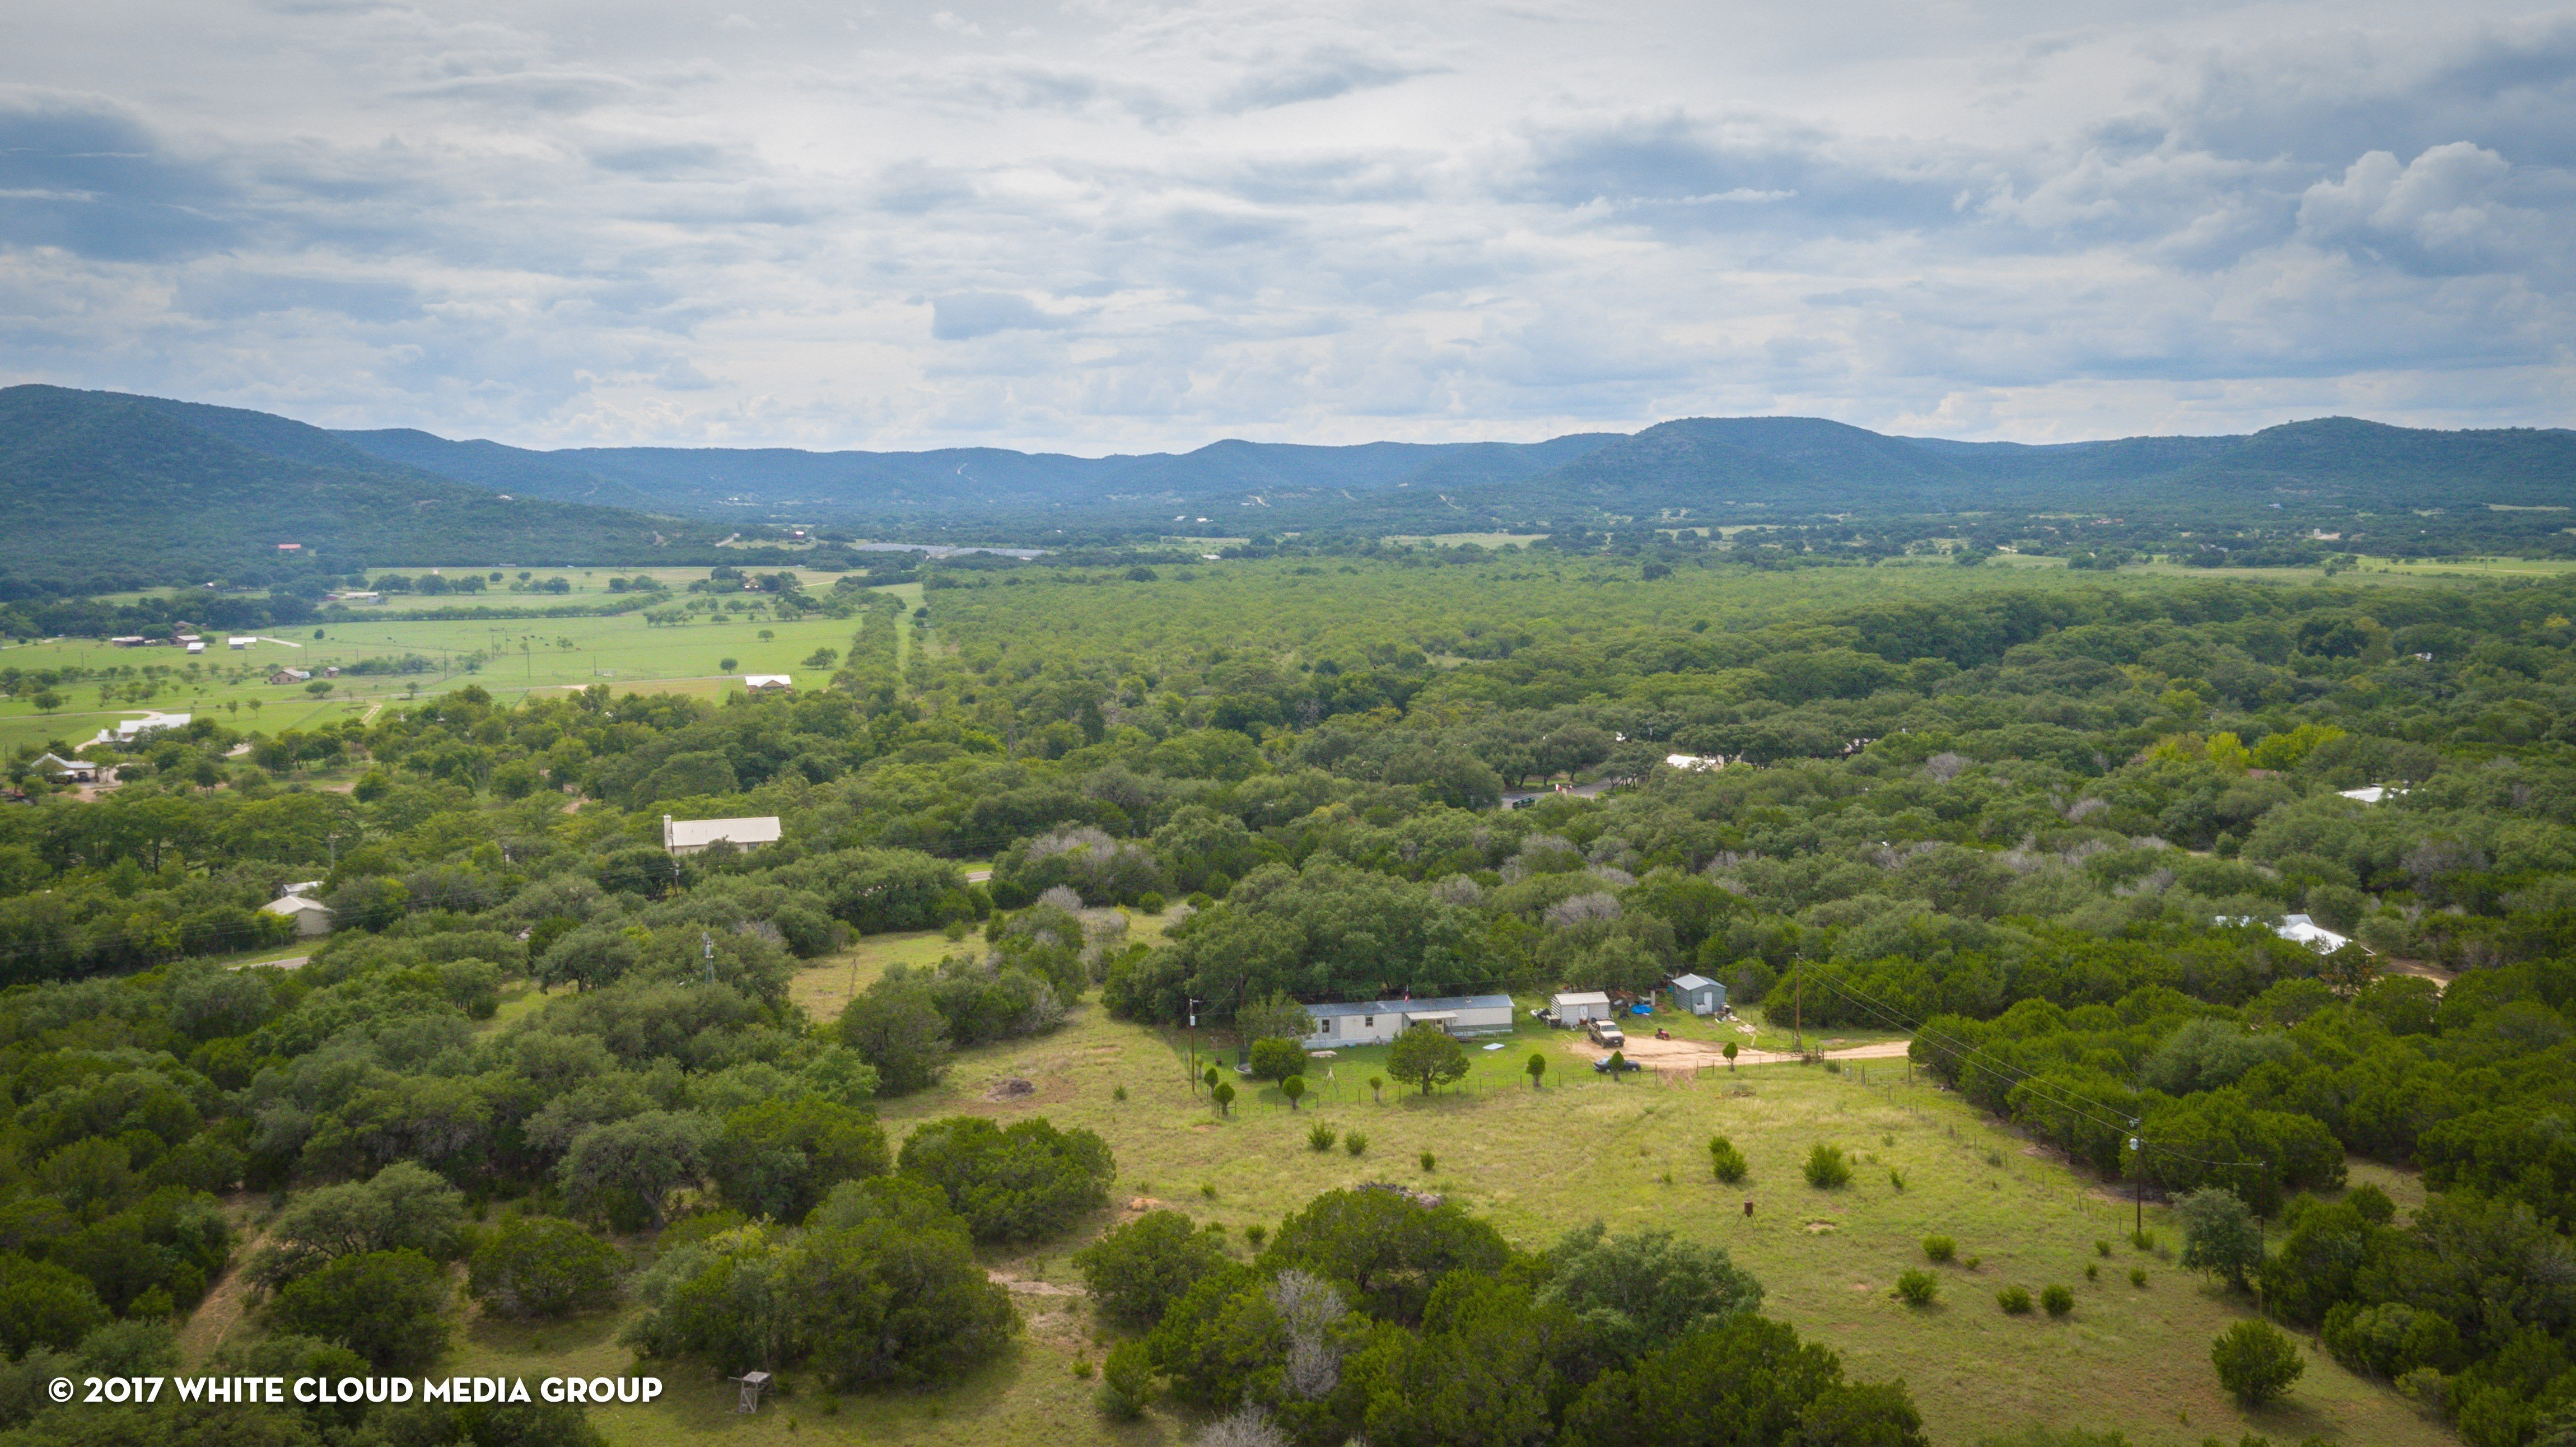 New singlewide mobile home on land near San Antonio. There are many options for homebuyers looking for land for their new mobile home around the San Anotnio, TX area.